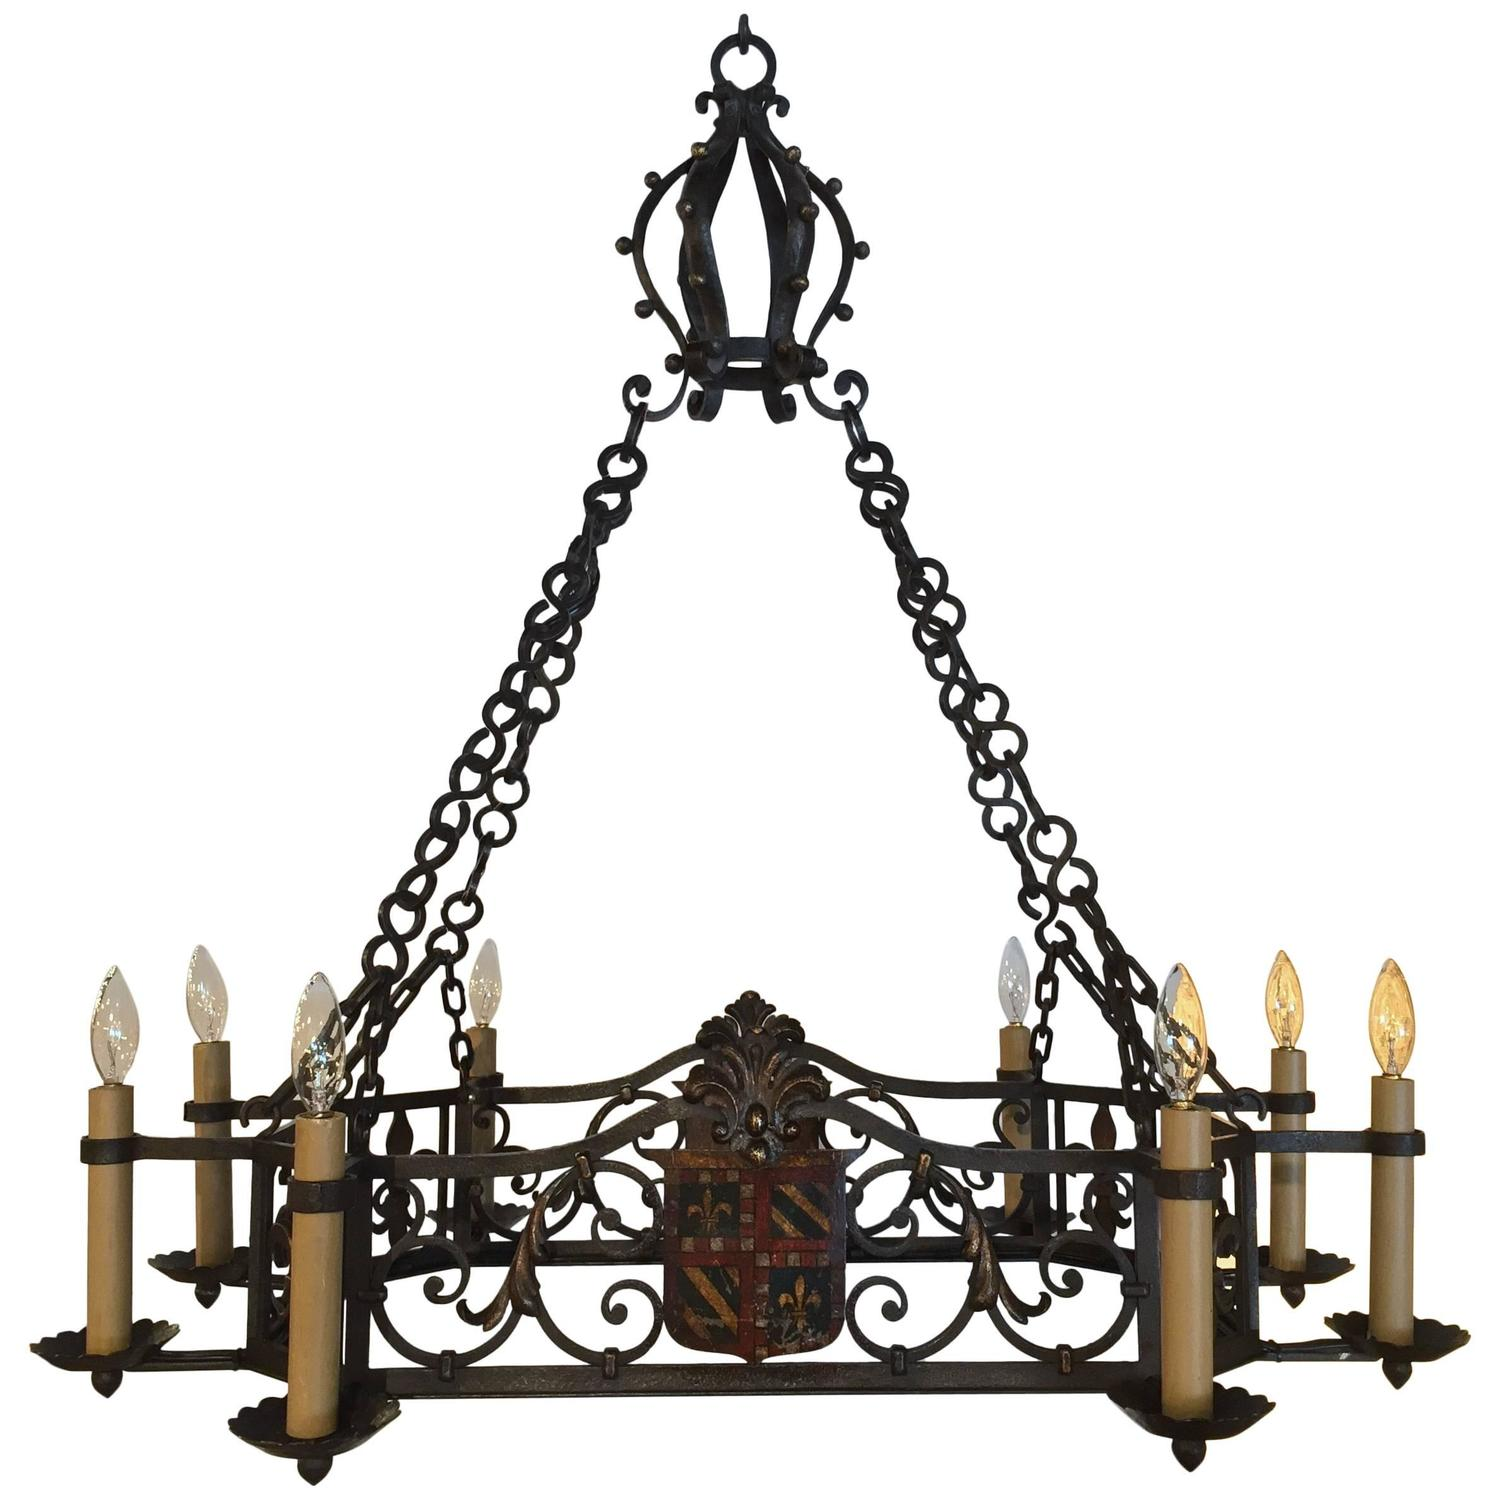 Engaging Wrought Iron Exterior Light Fixtures Style | Outstanding Gothic Chandelier Designs